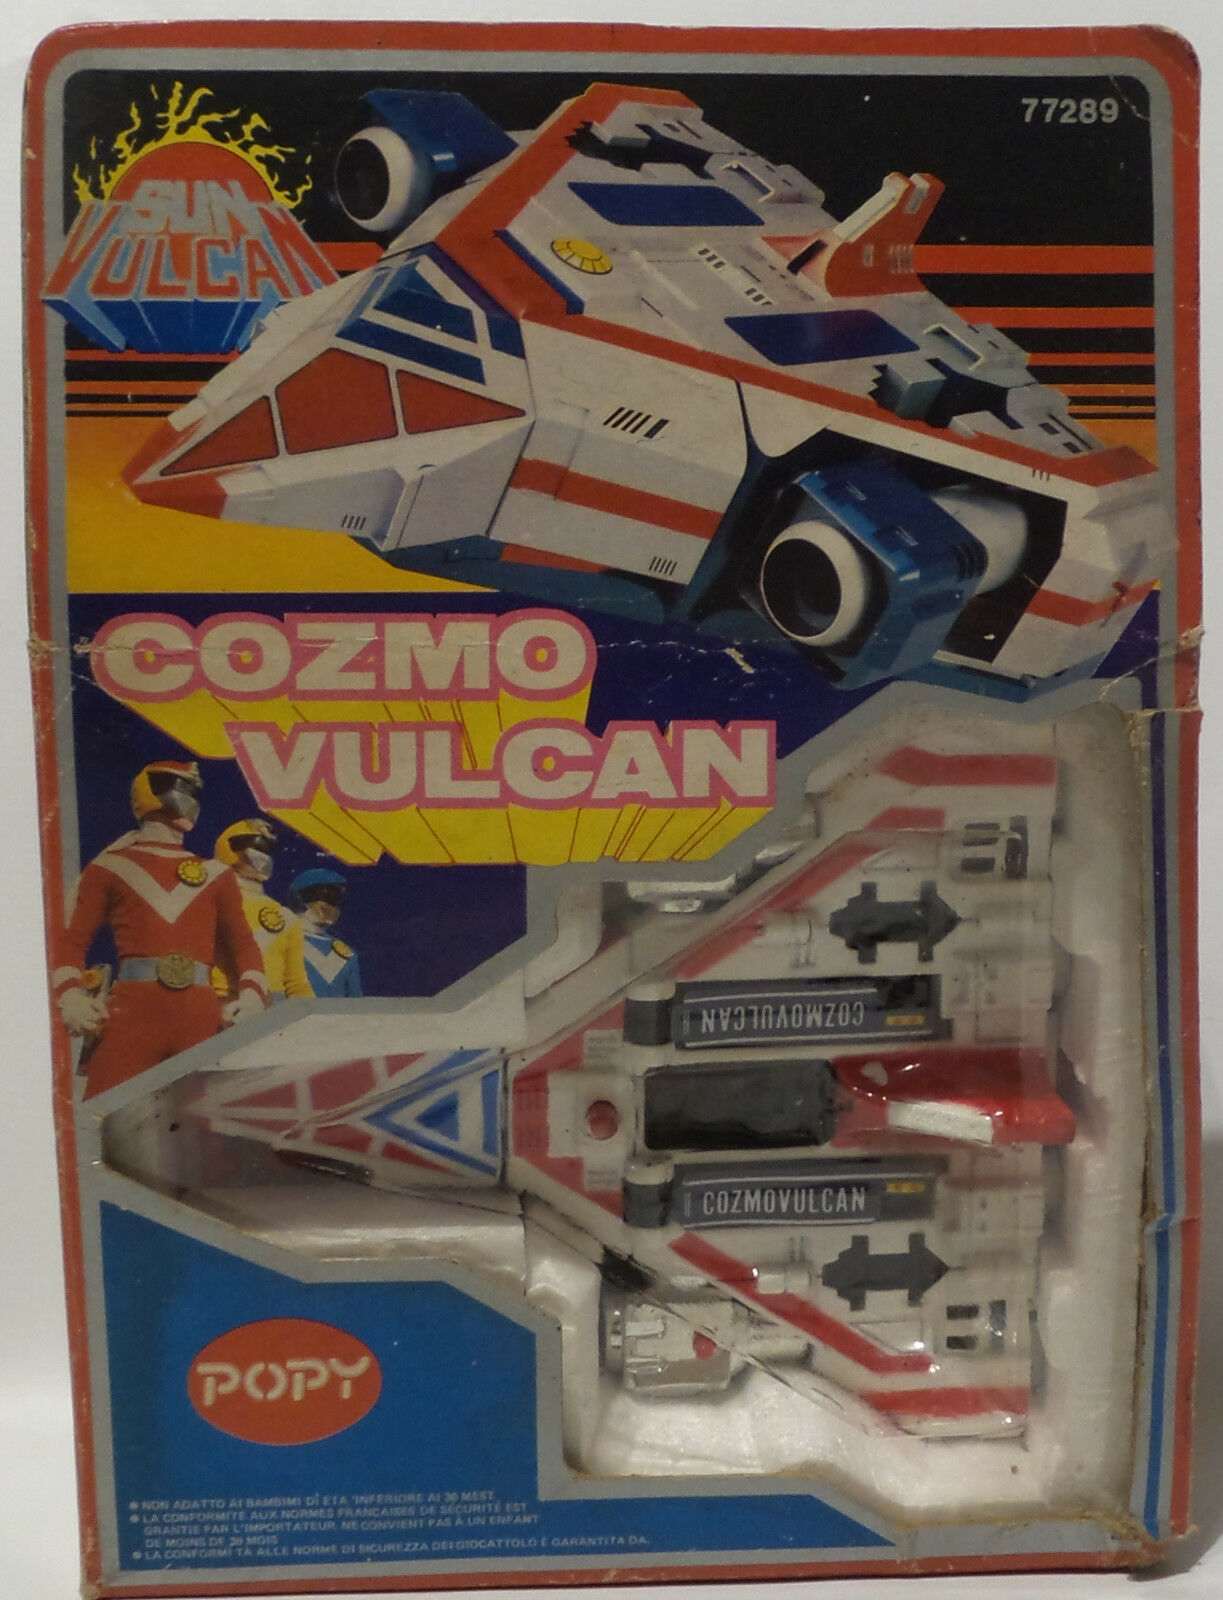 SUN VULCAN   COZMO VULCAN MODEL MADE BY POPY - EXTREMELY RARE - MADE I THE 80'S